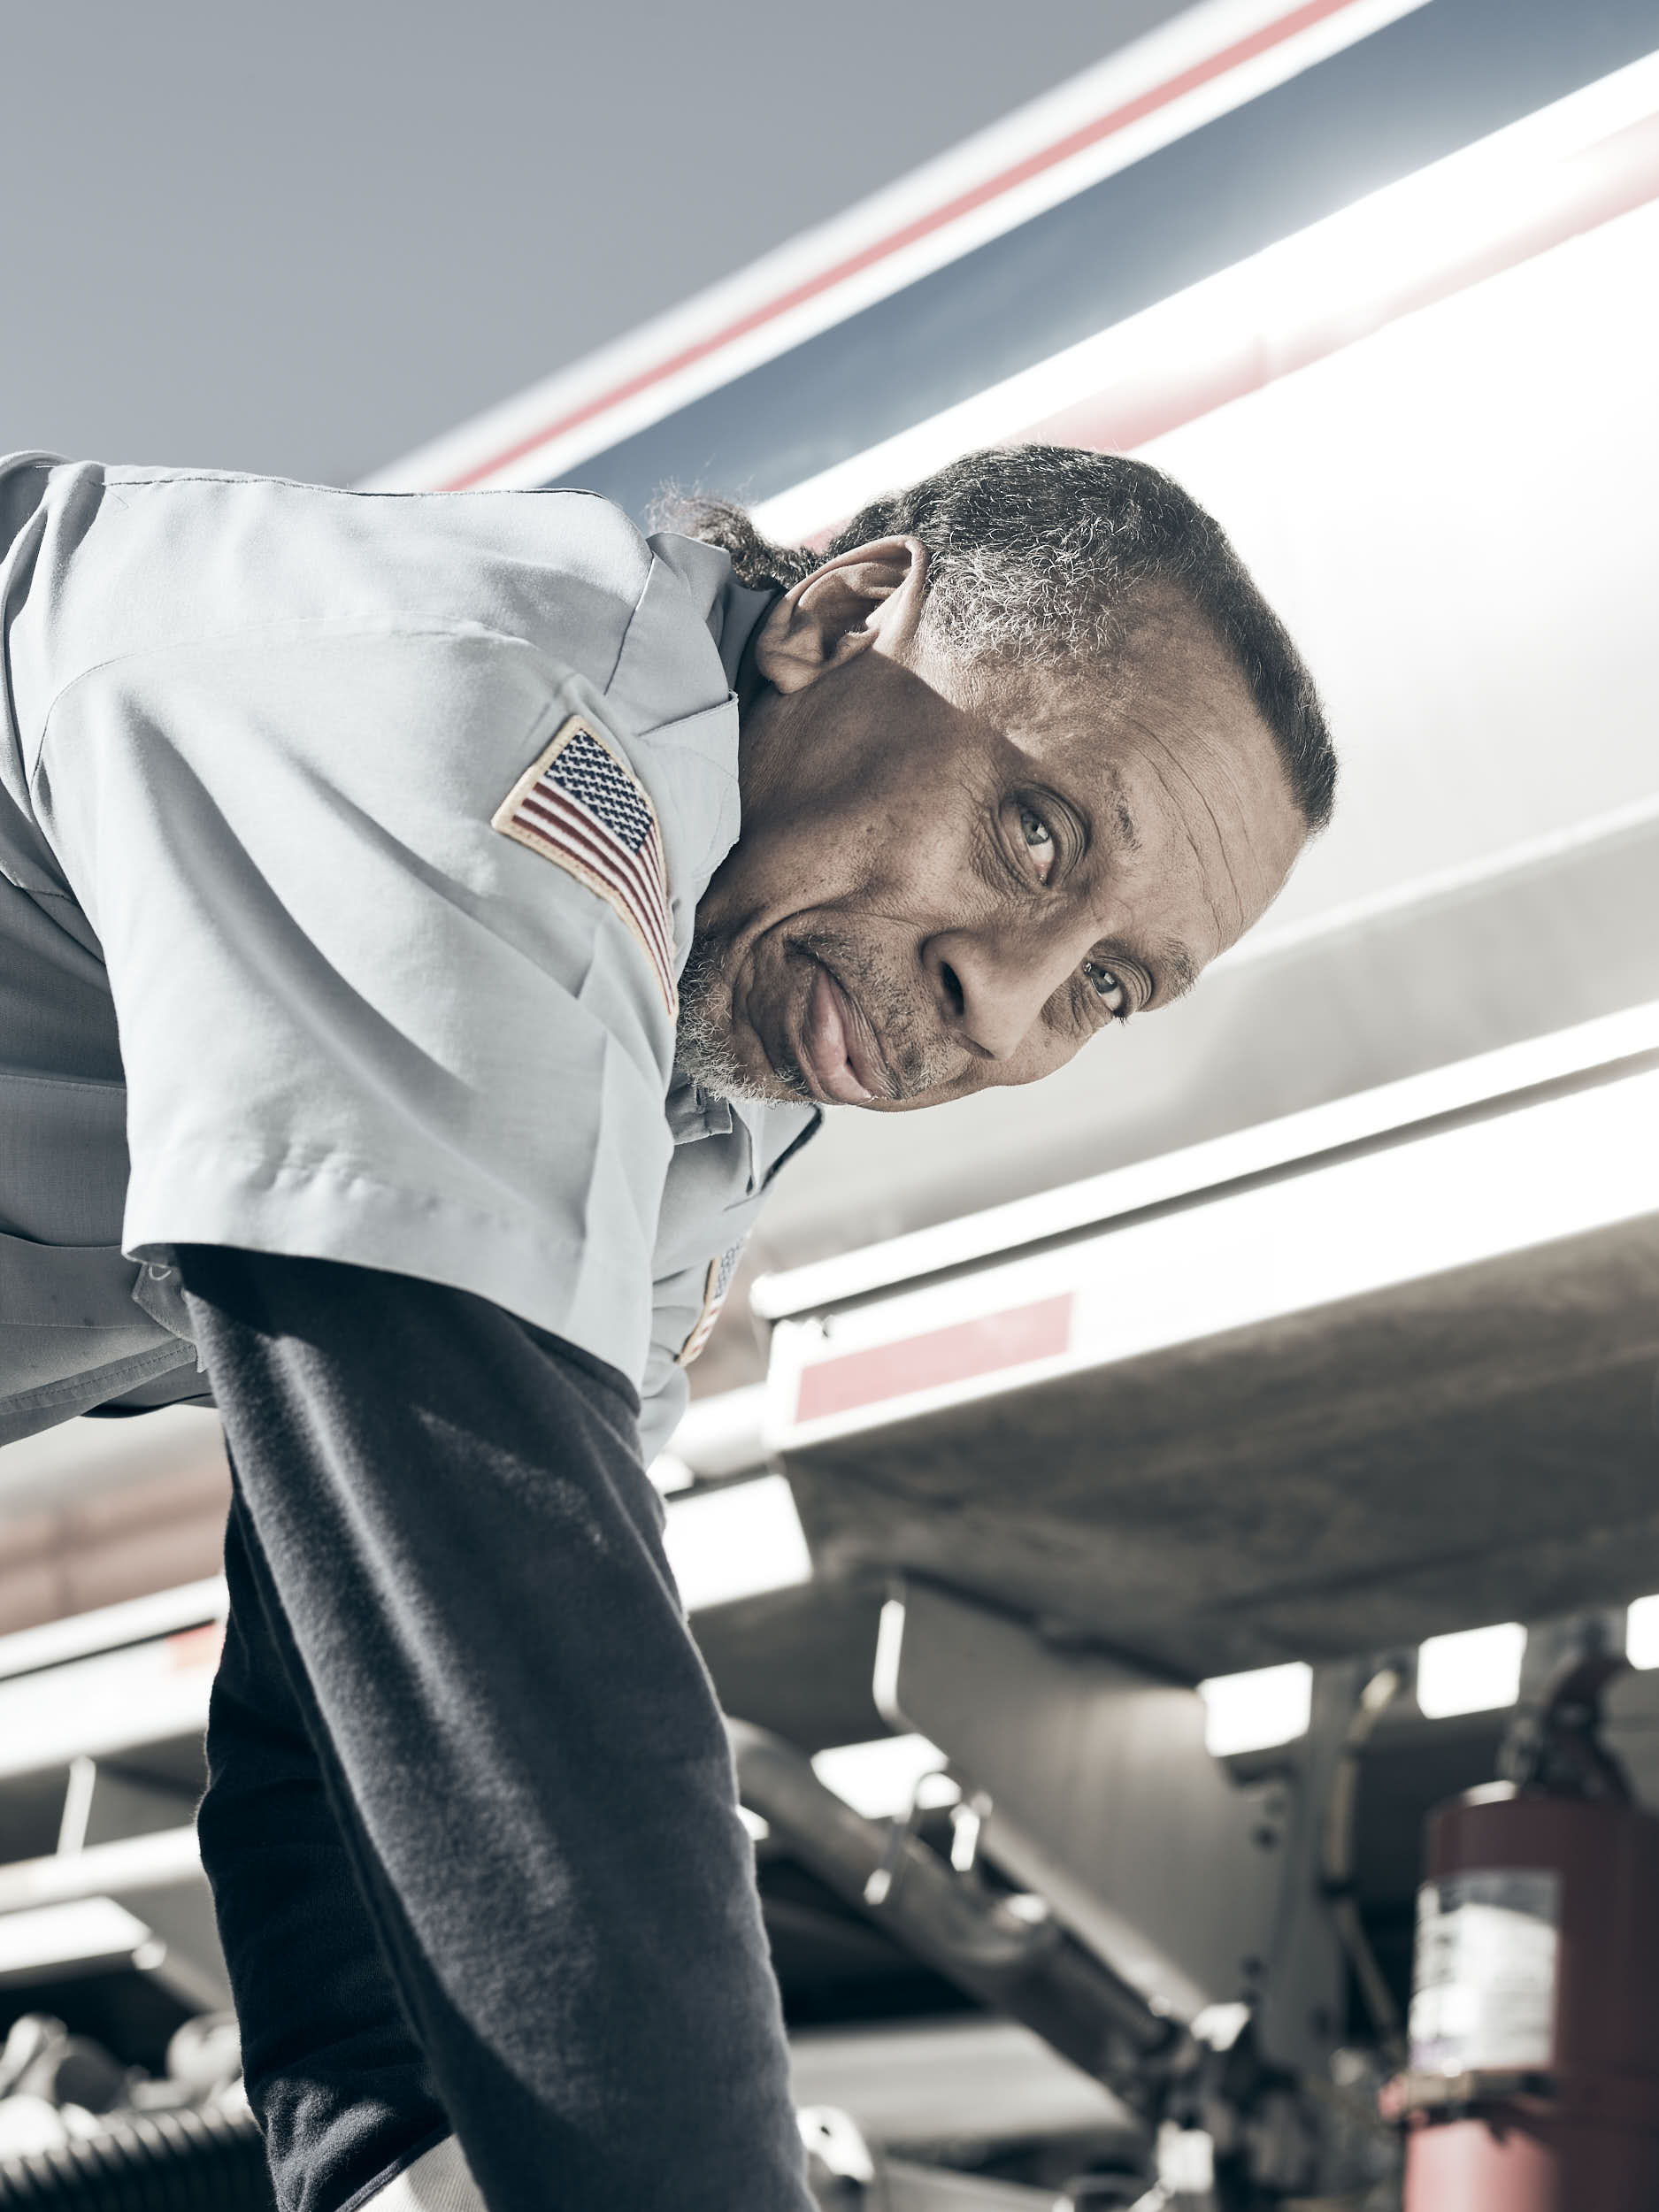 CARY_OIL_FUEL_TRUCK_DRIVER_0038_retouched